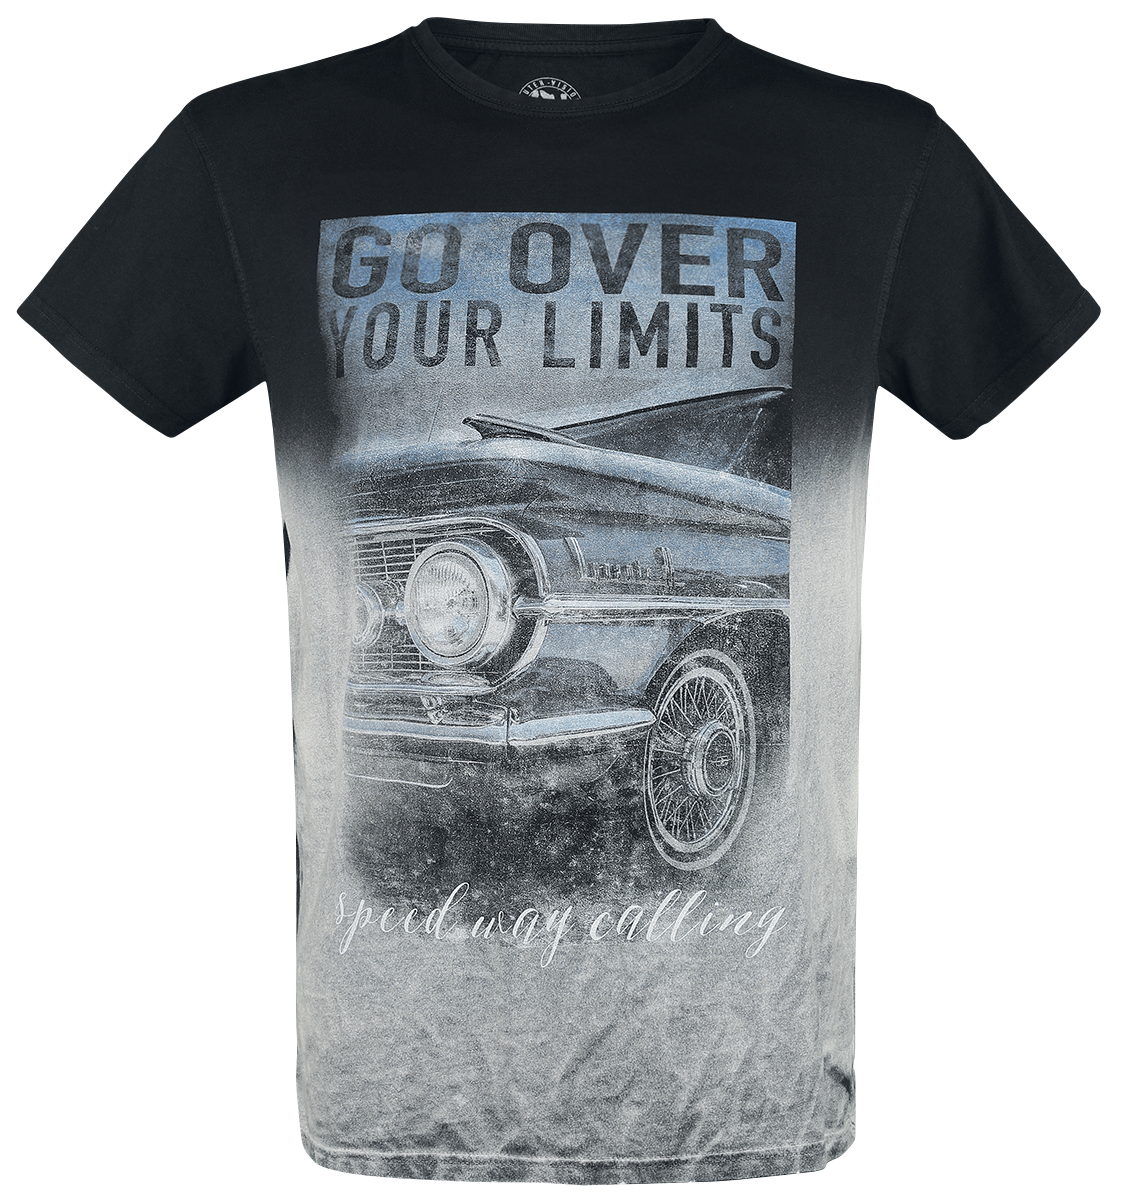 Outer Vision - Go Over Your Limits - T-Shirt - black image